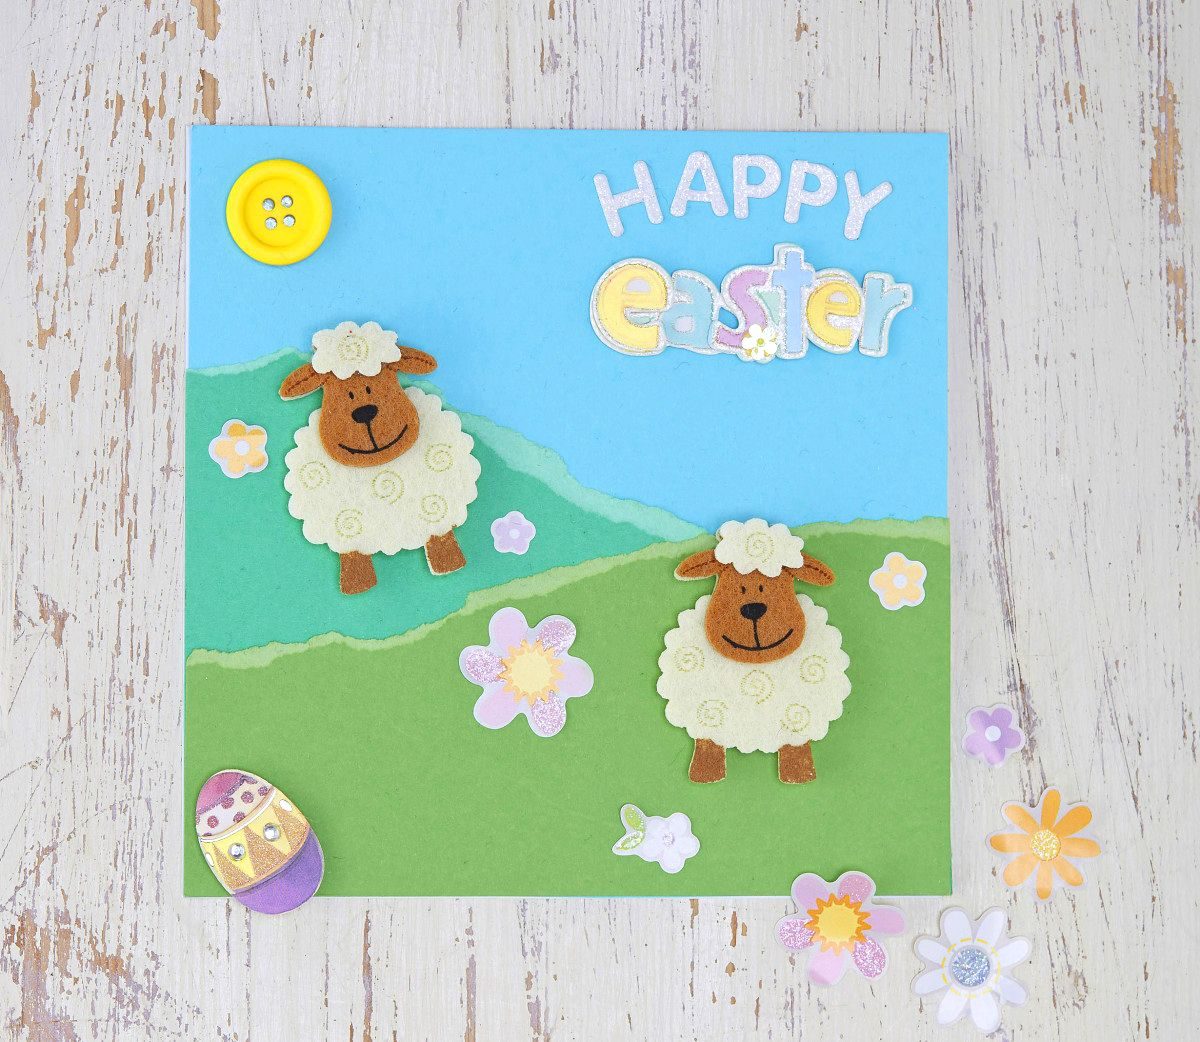 5 Easy Easter Cards to Make – How to Make a Easter Card